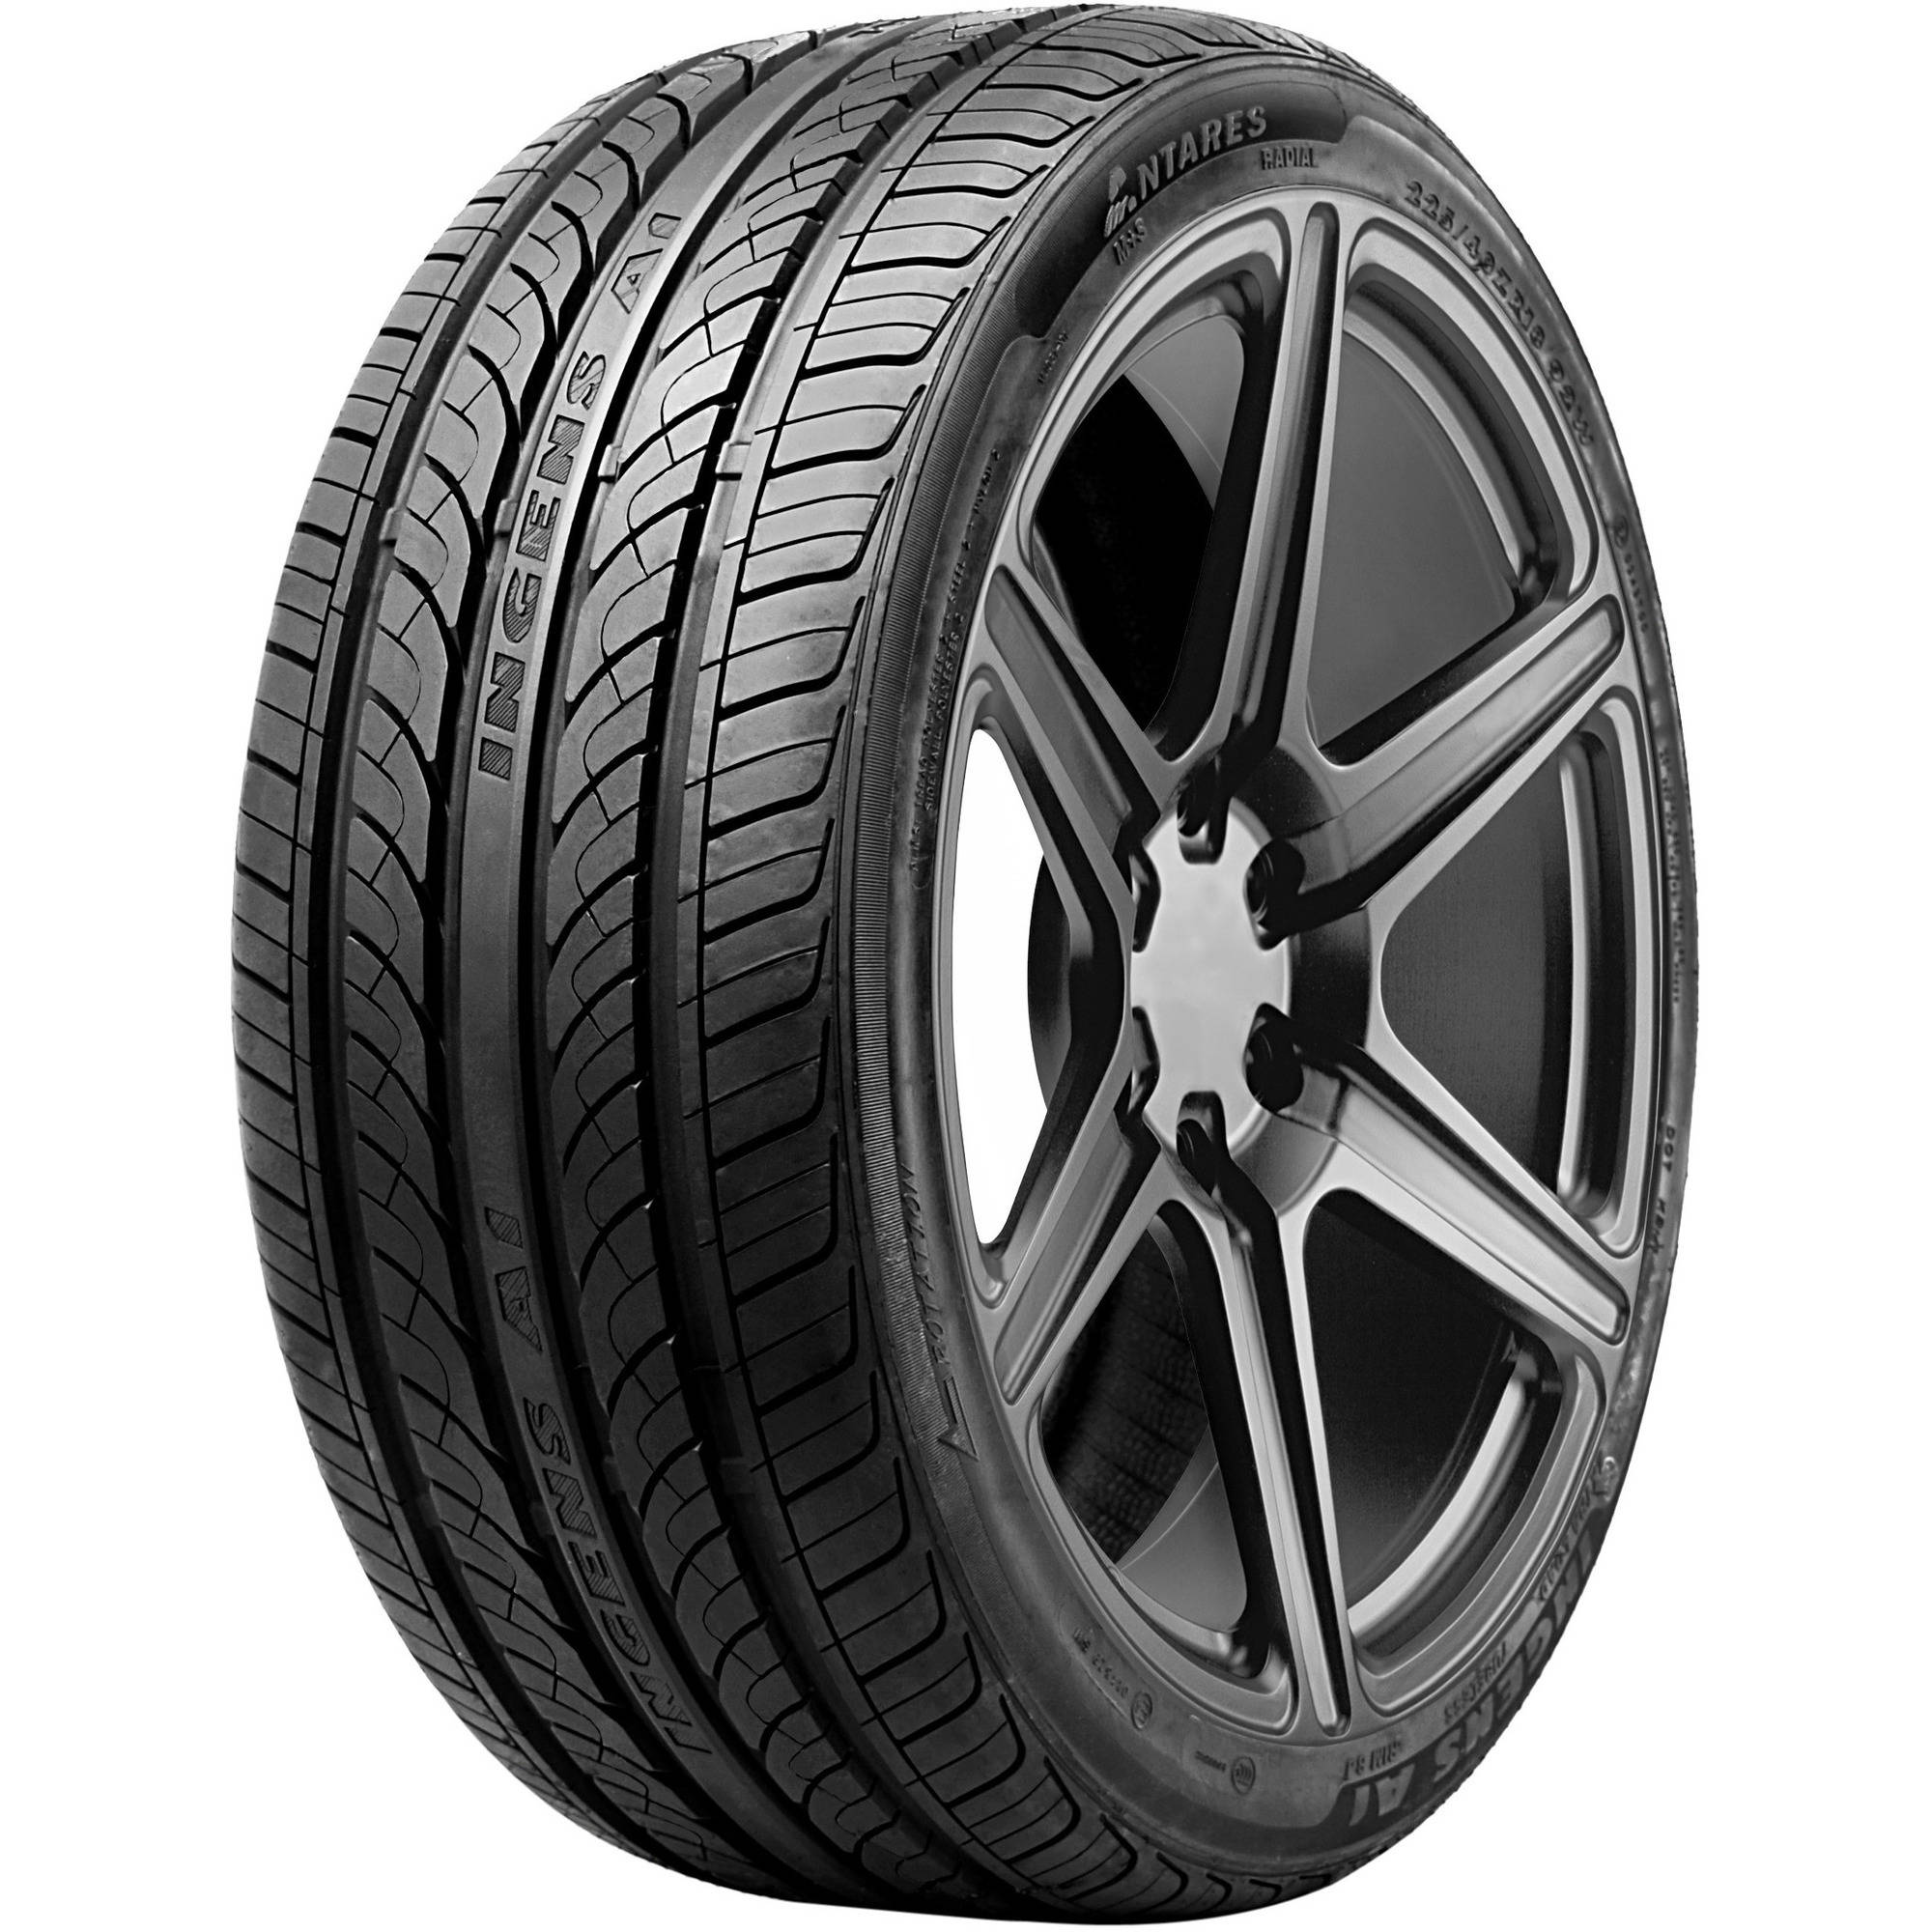 Antares Ingens A1 225/40R18 92W Tire